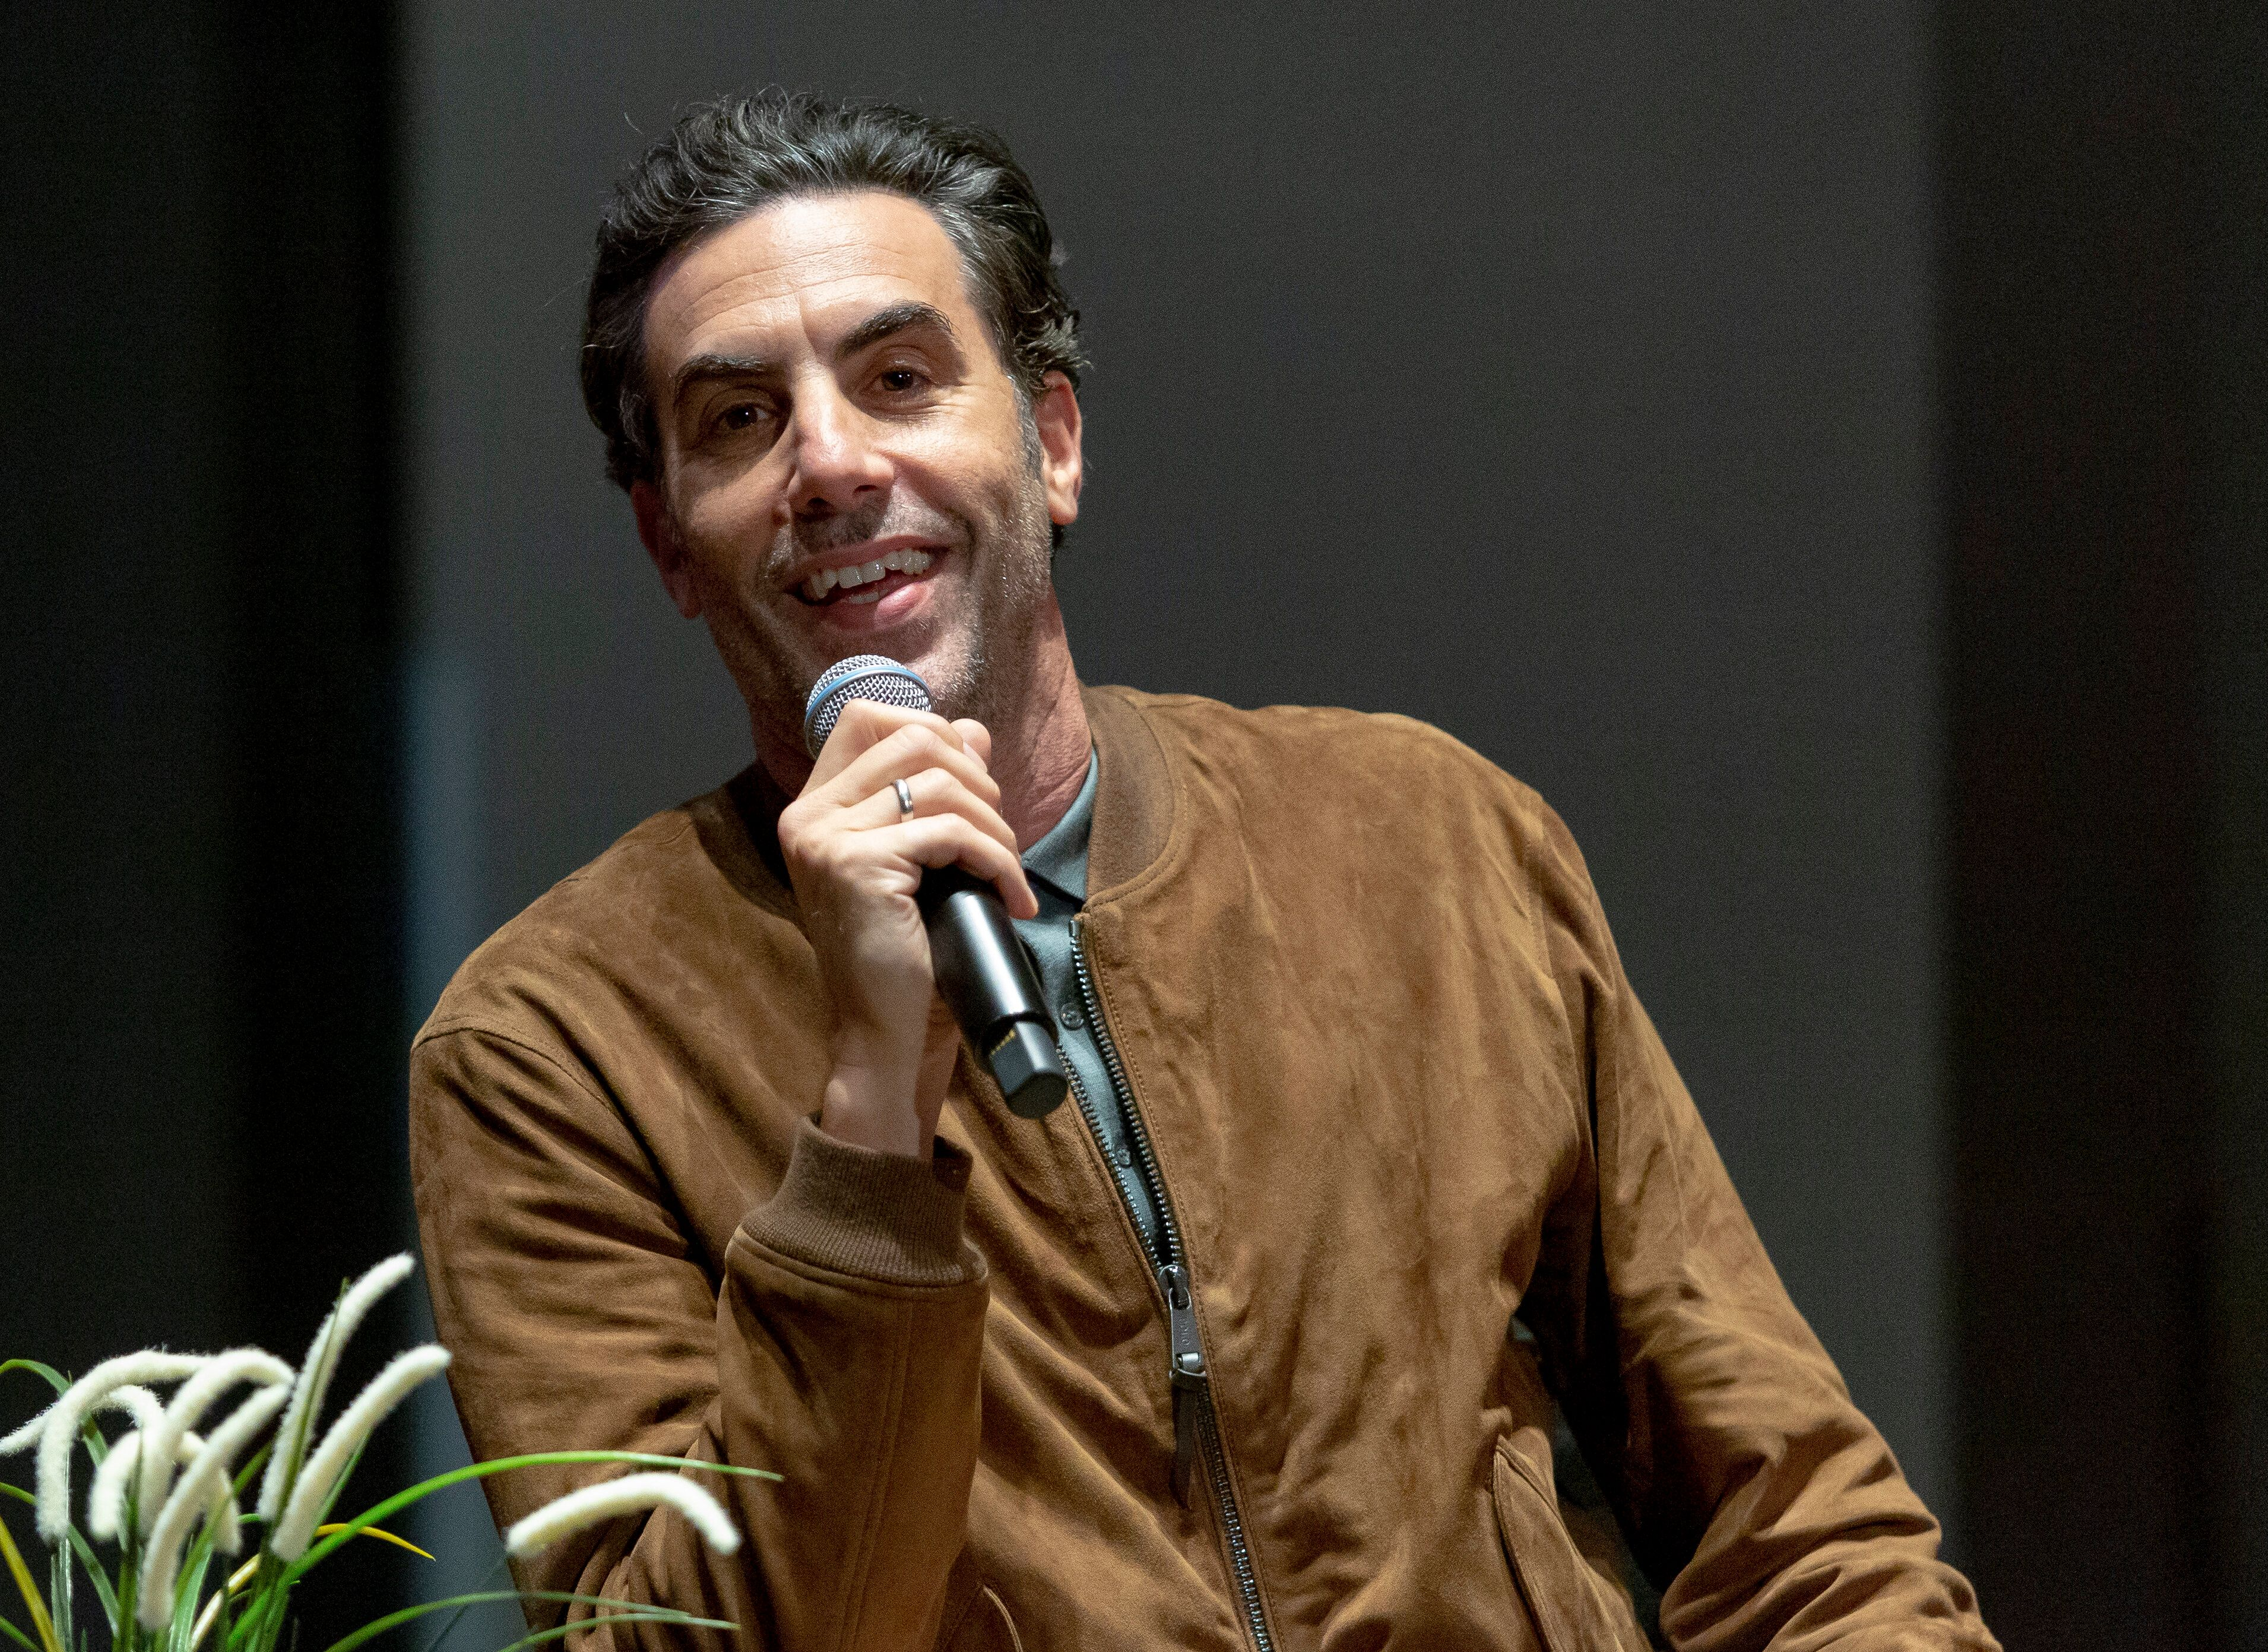 """LOS ANGELES, CALIFORNIA - MAY 21: Actor Sacha Baron Cohen attends SAG-AFTRA Foundation Conversations with """"Who Is America"""" at SAG-AFTRA Foundation Screening Room on May 21, 2019 in Los Angeles, California. (Photo by Vincent Sandoval/Getty Images)"""